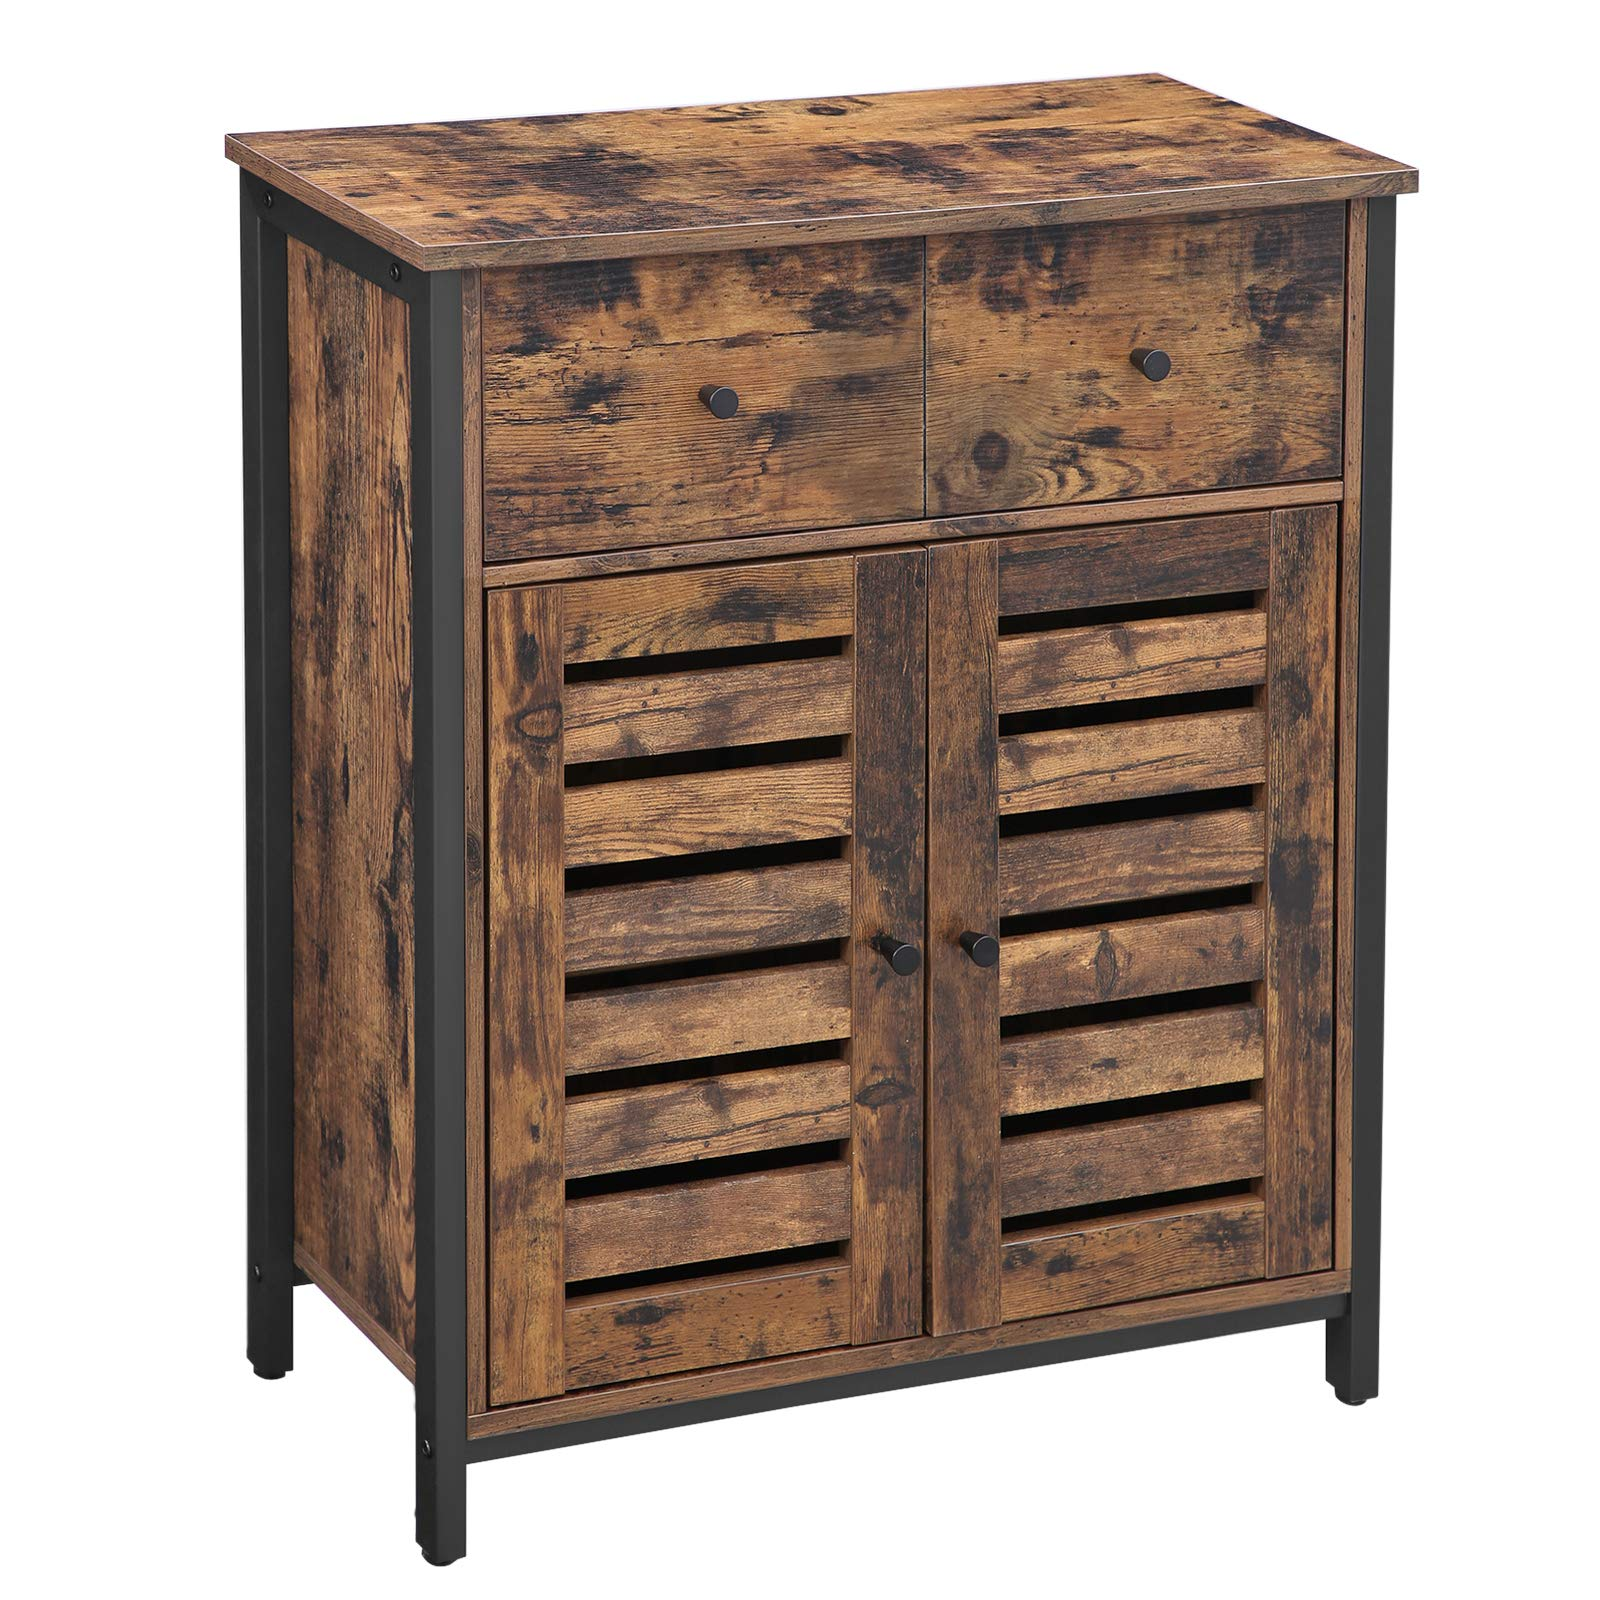 Enjoy fast, free nationwide shipping!  Owned by a husband and wife team of high-school music teachers, HawkinsWoodshop.com is your one stop shop for affordable furniture.  Shop HawkinsWoodshop.com for solid wood & metal modern, traditional, contemporary, industrial, custom, rustic, and farmhouse furniture including our Rustic Brown and Black Bathroom Cabinet, Kitchen Storage Cabinet.